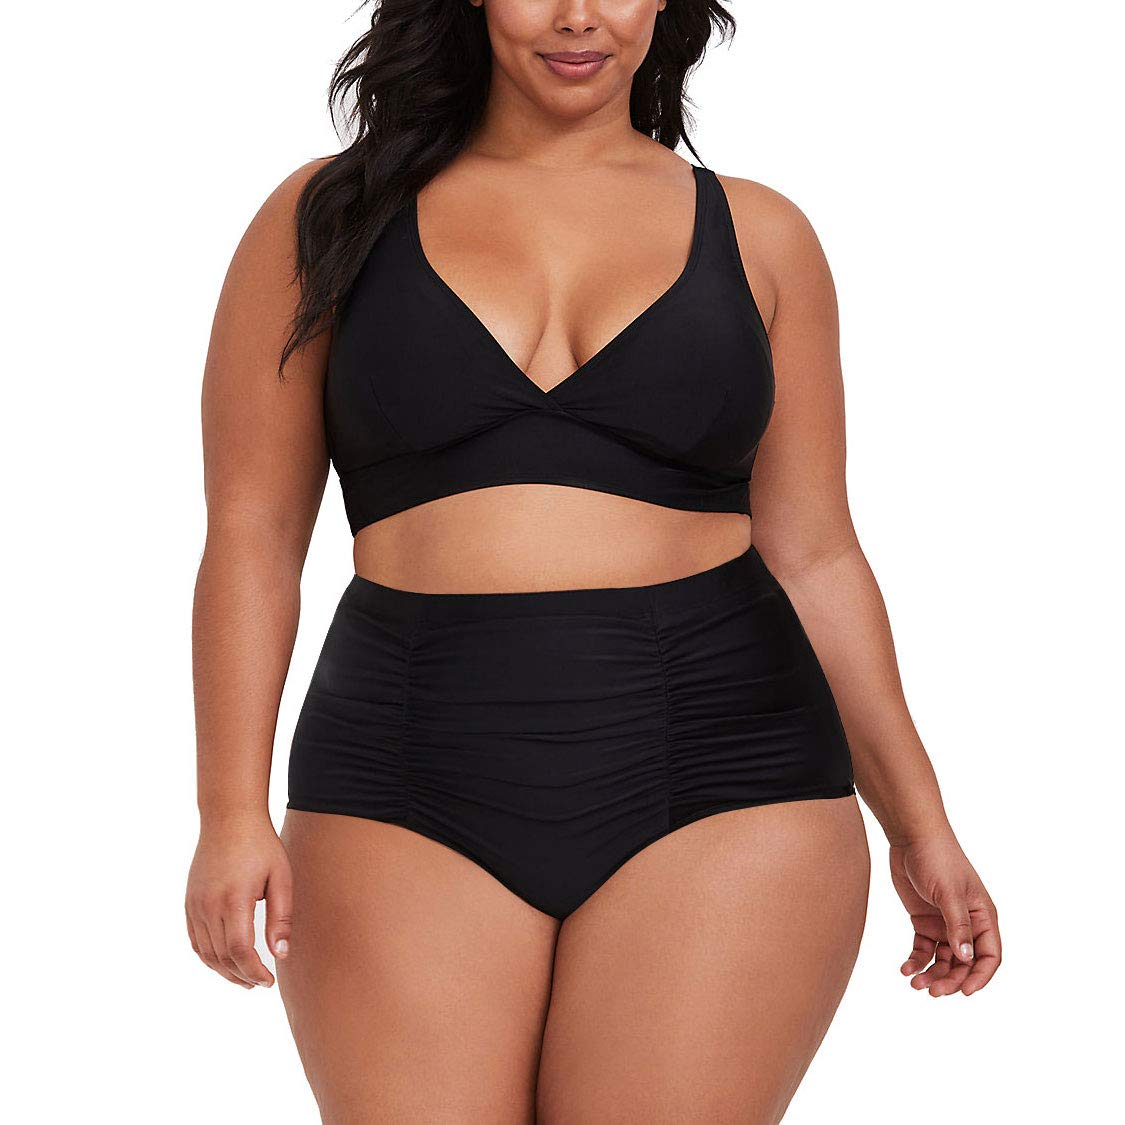 Kisscynest Women's Plus Size High Waist Ruched Swimsuit Swimwear Bathing Suit